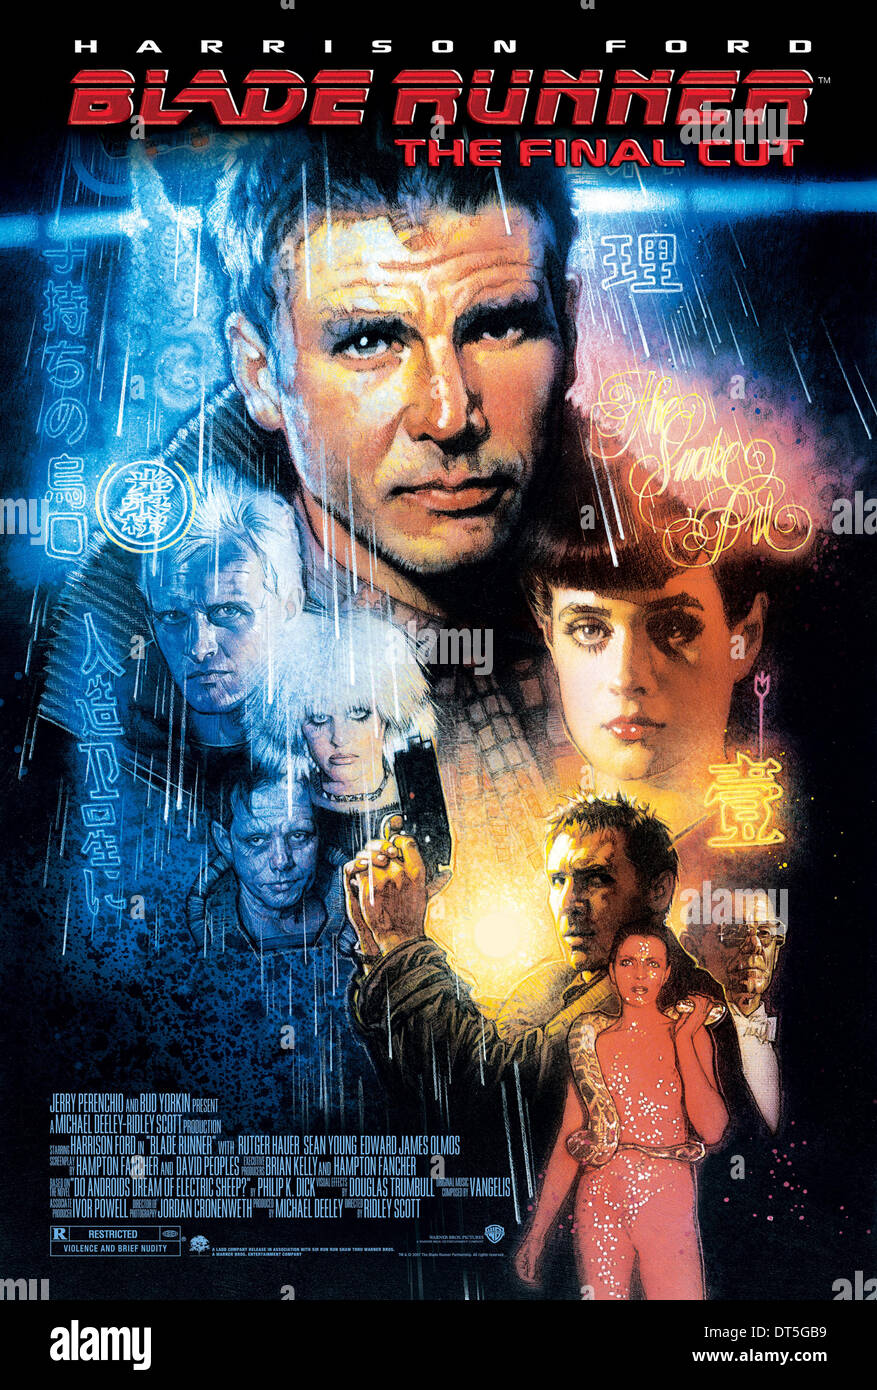 HARRISON FORD & SEAN YOUNG POSTER BLADE RUNNER (1982) - Stock Image